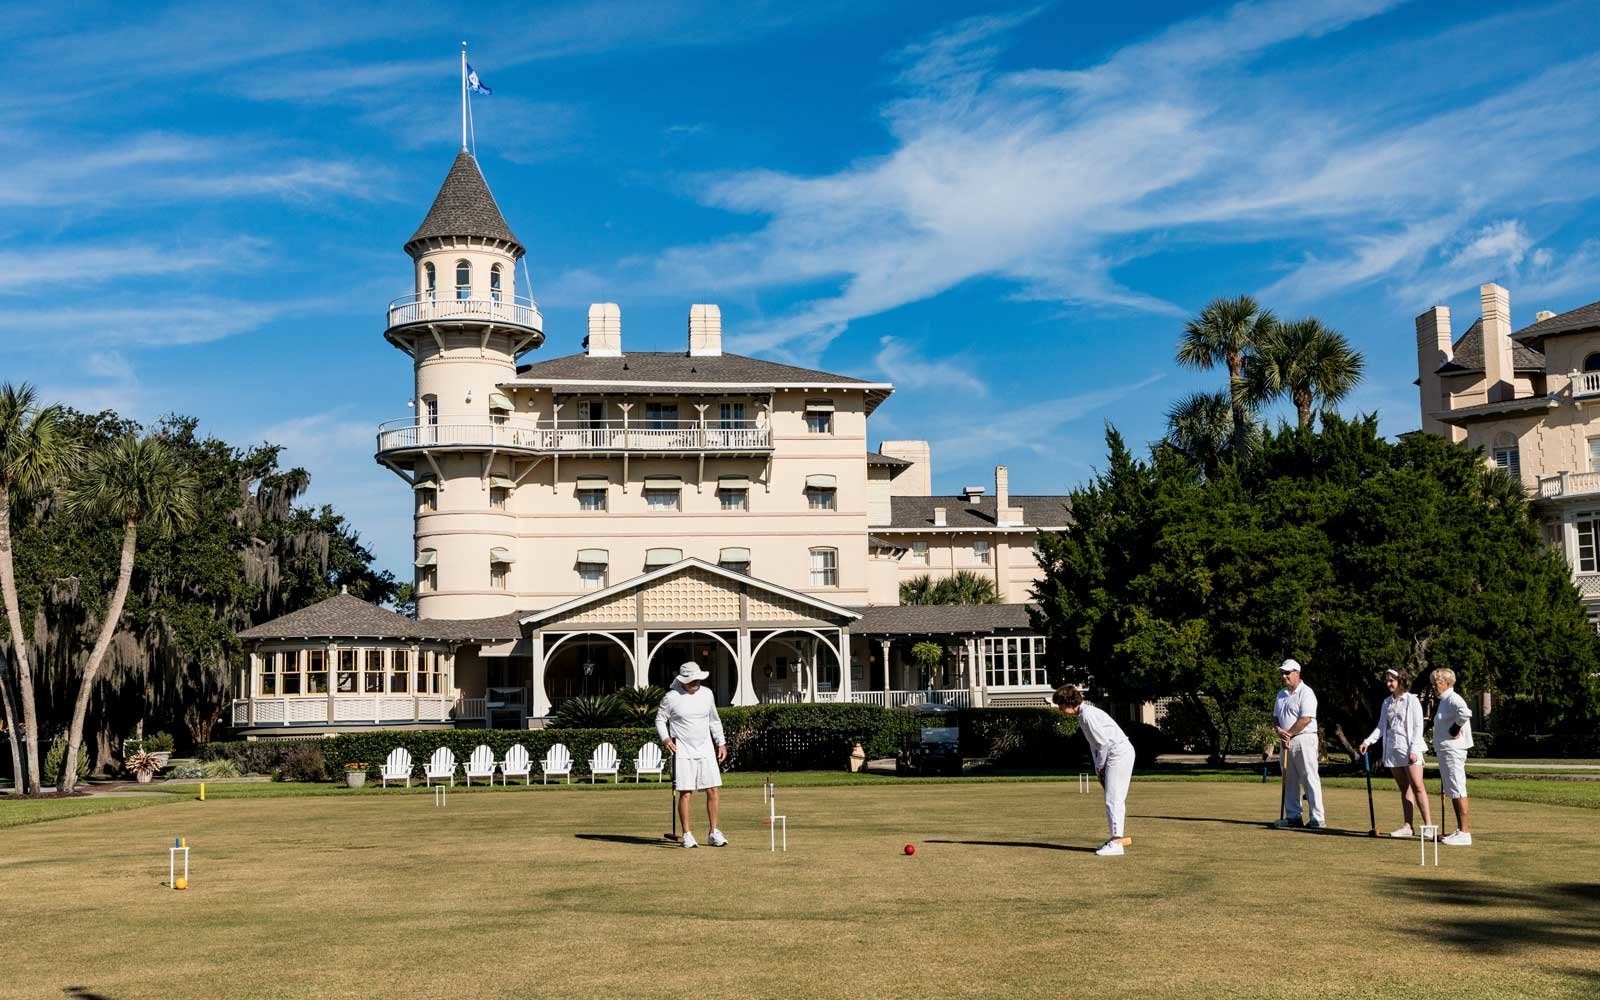 People dressed in all white playing croquet on the lawn of the Jekyll Island Club Resort